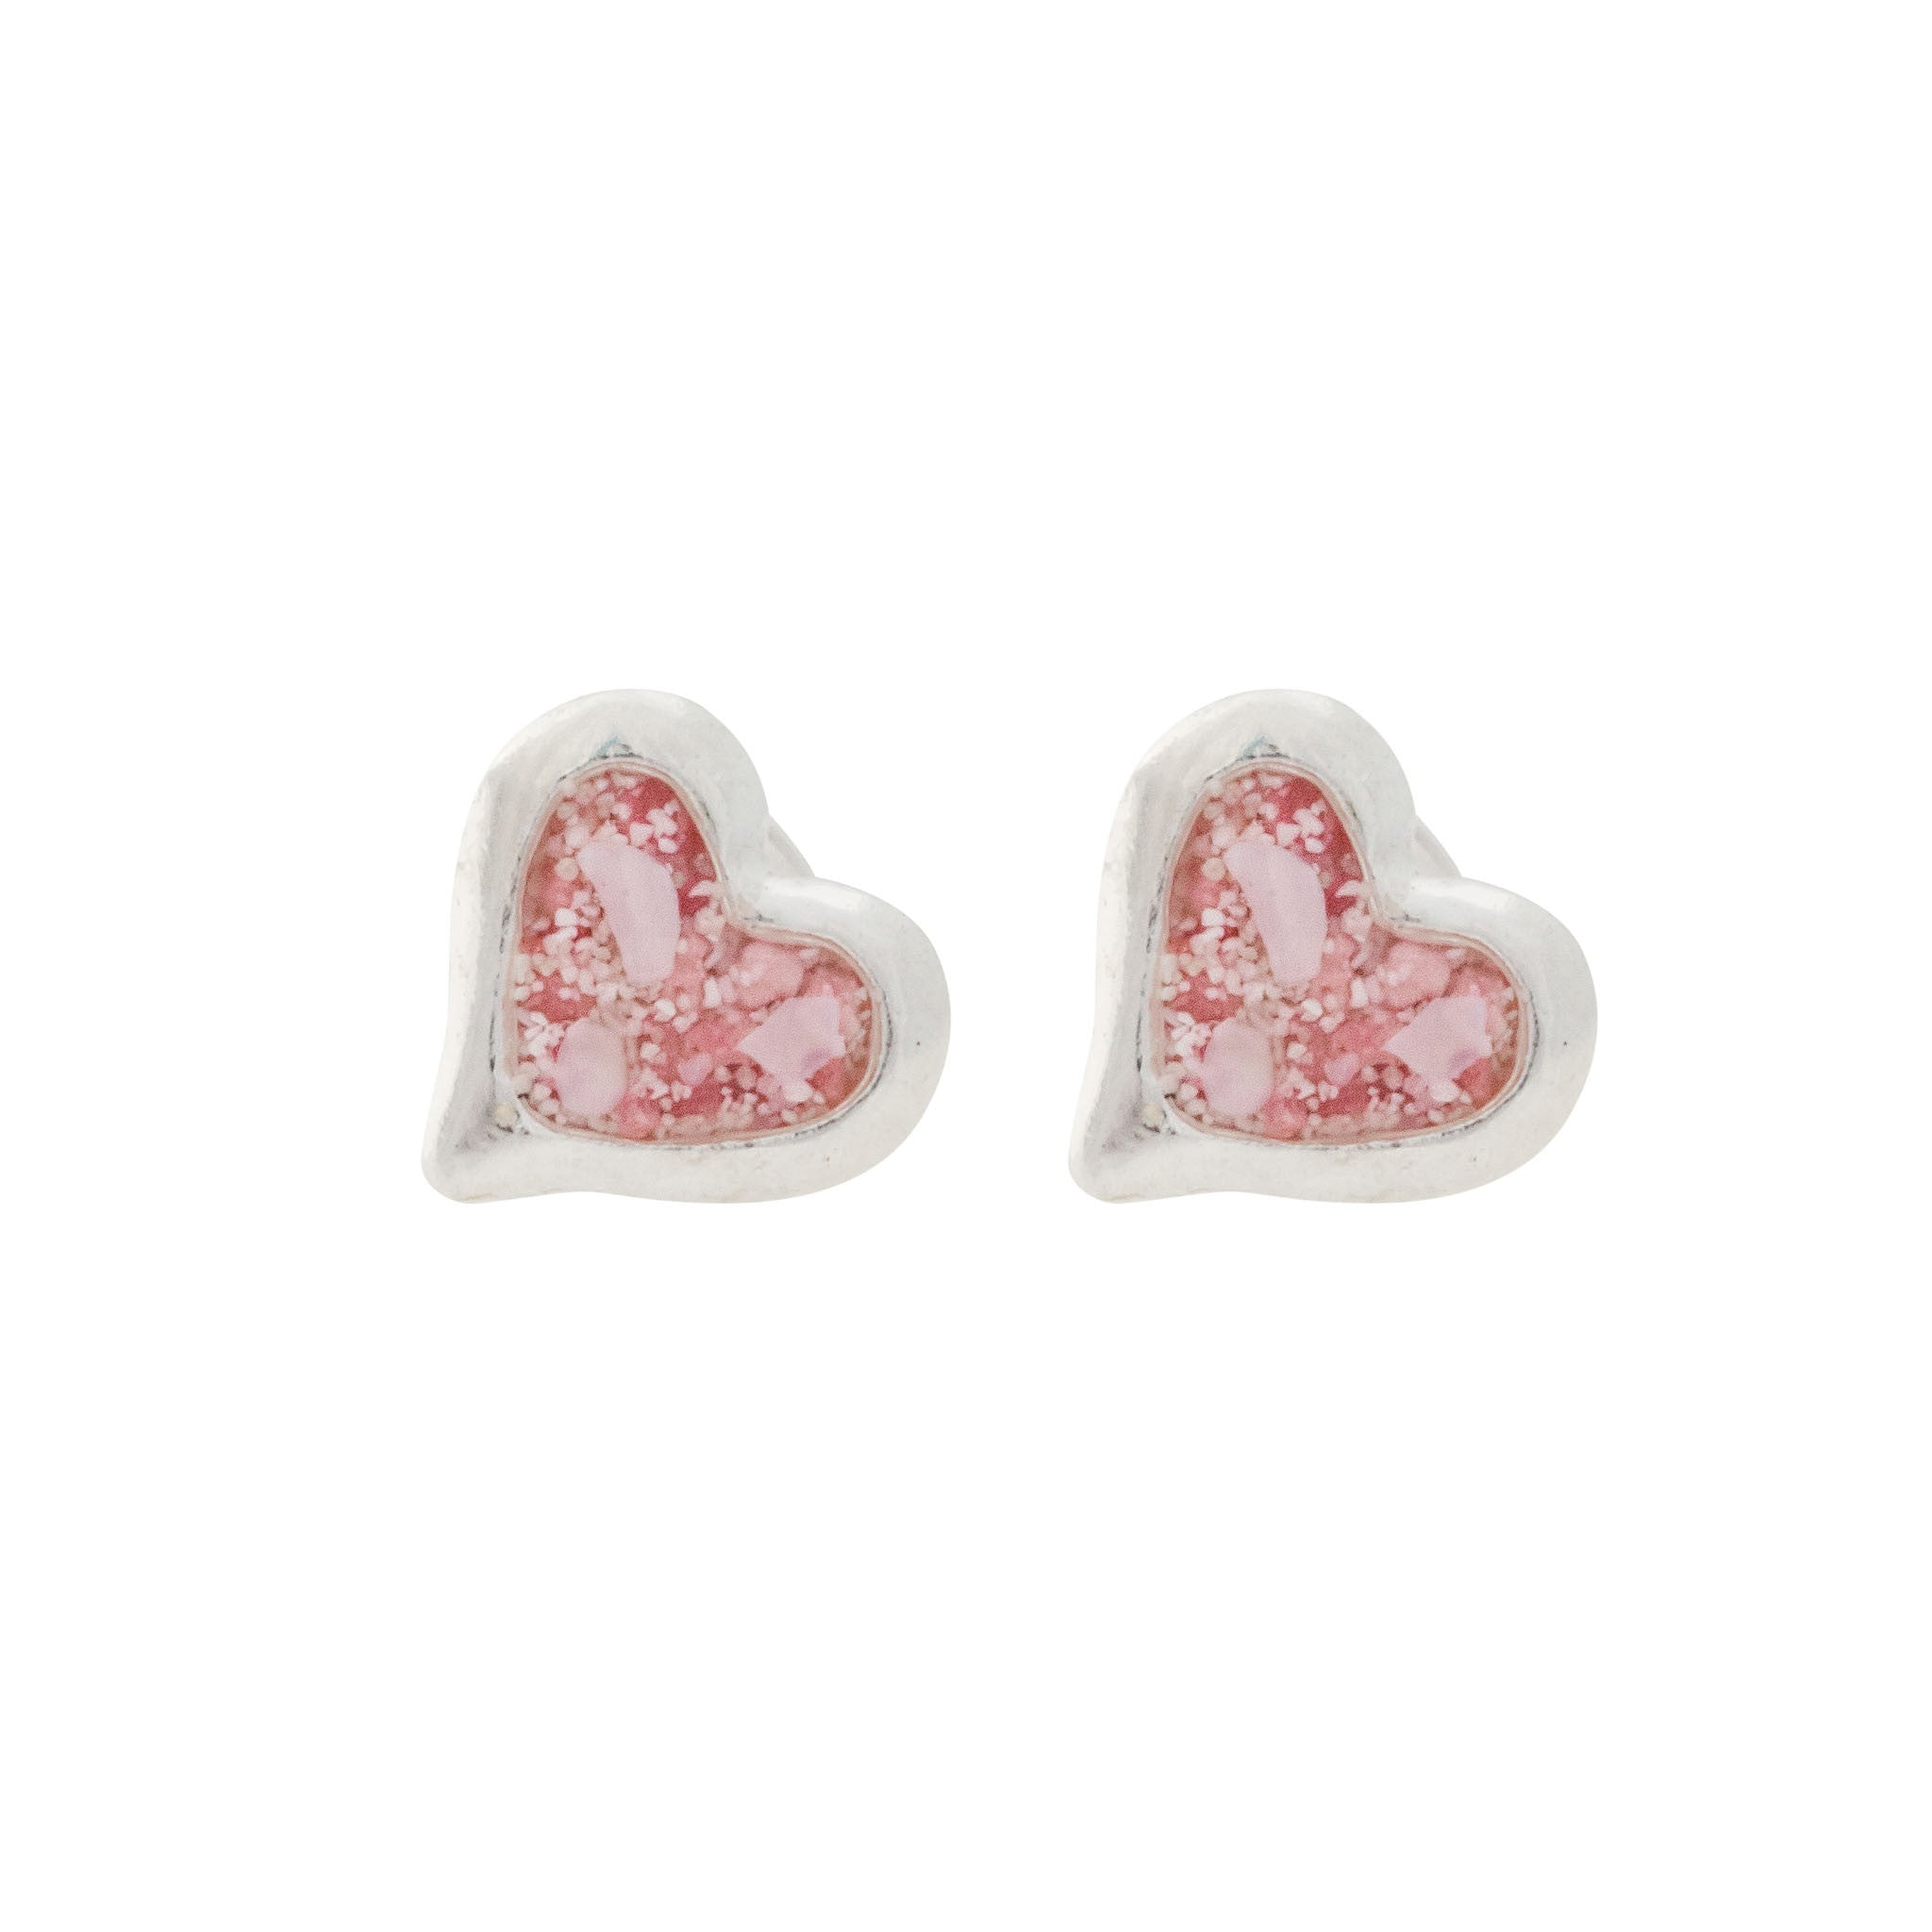 pandora of love heart john ribbons image greed stud women earrings